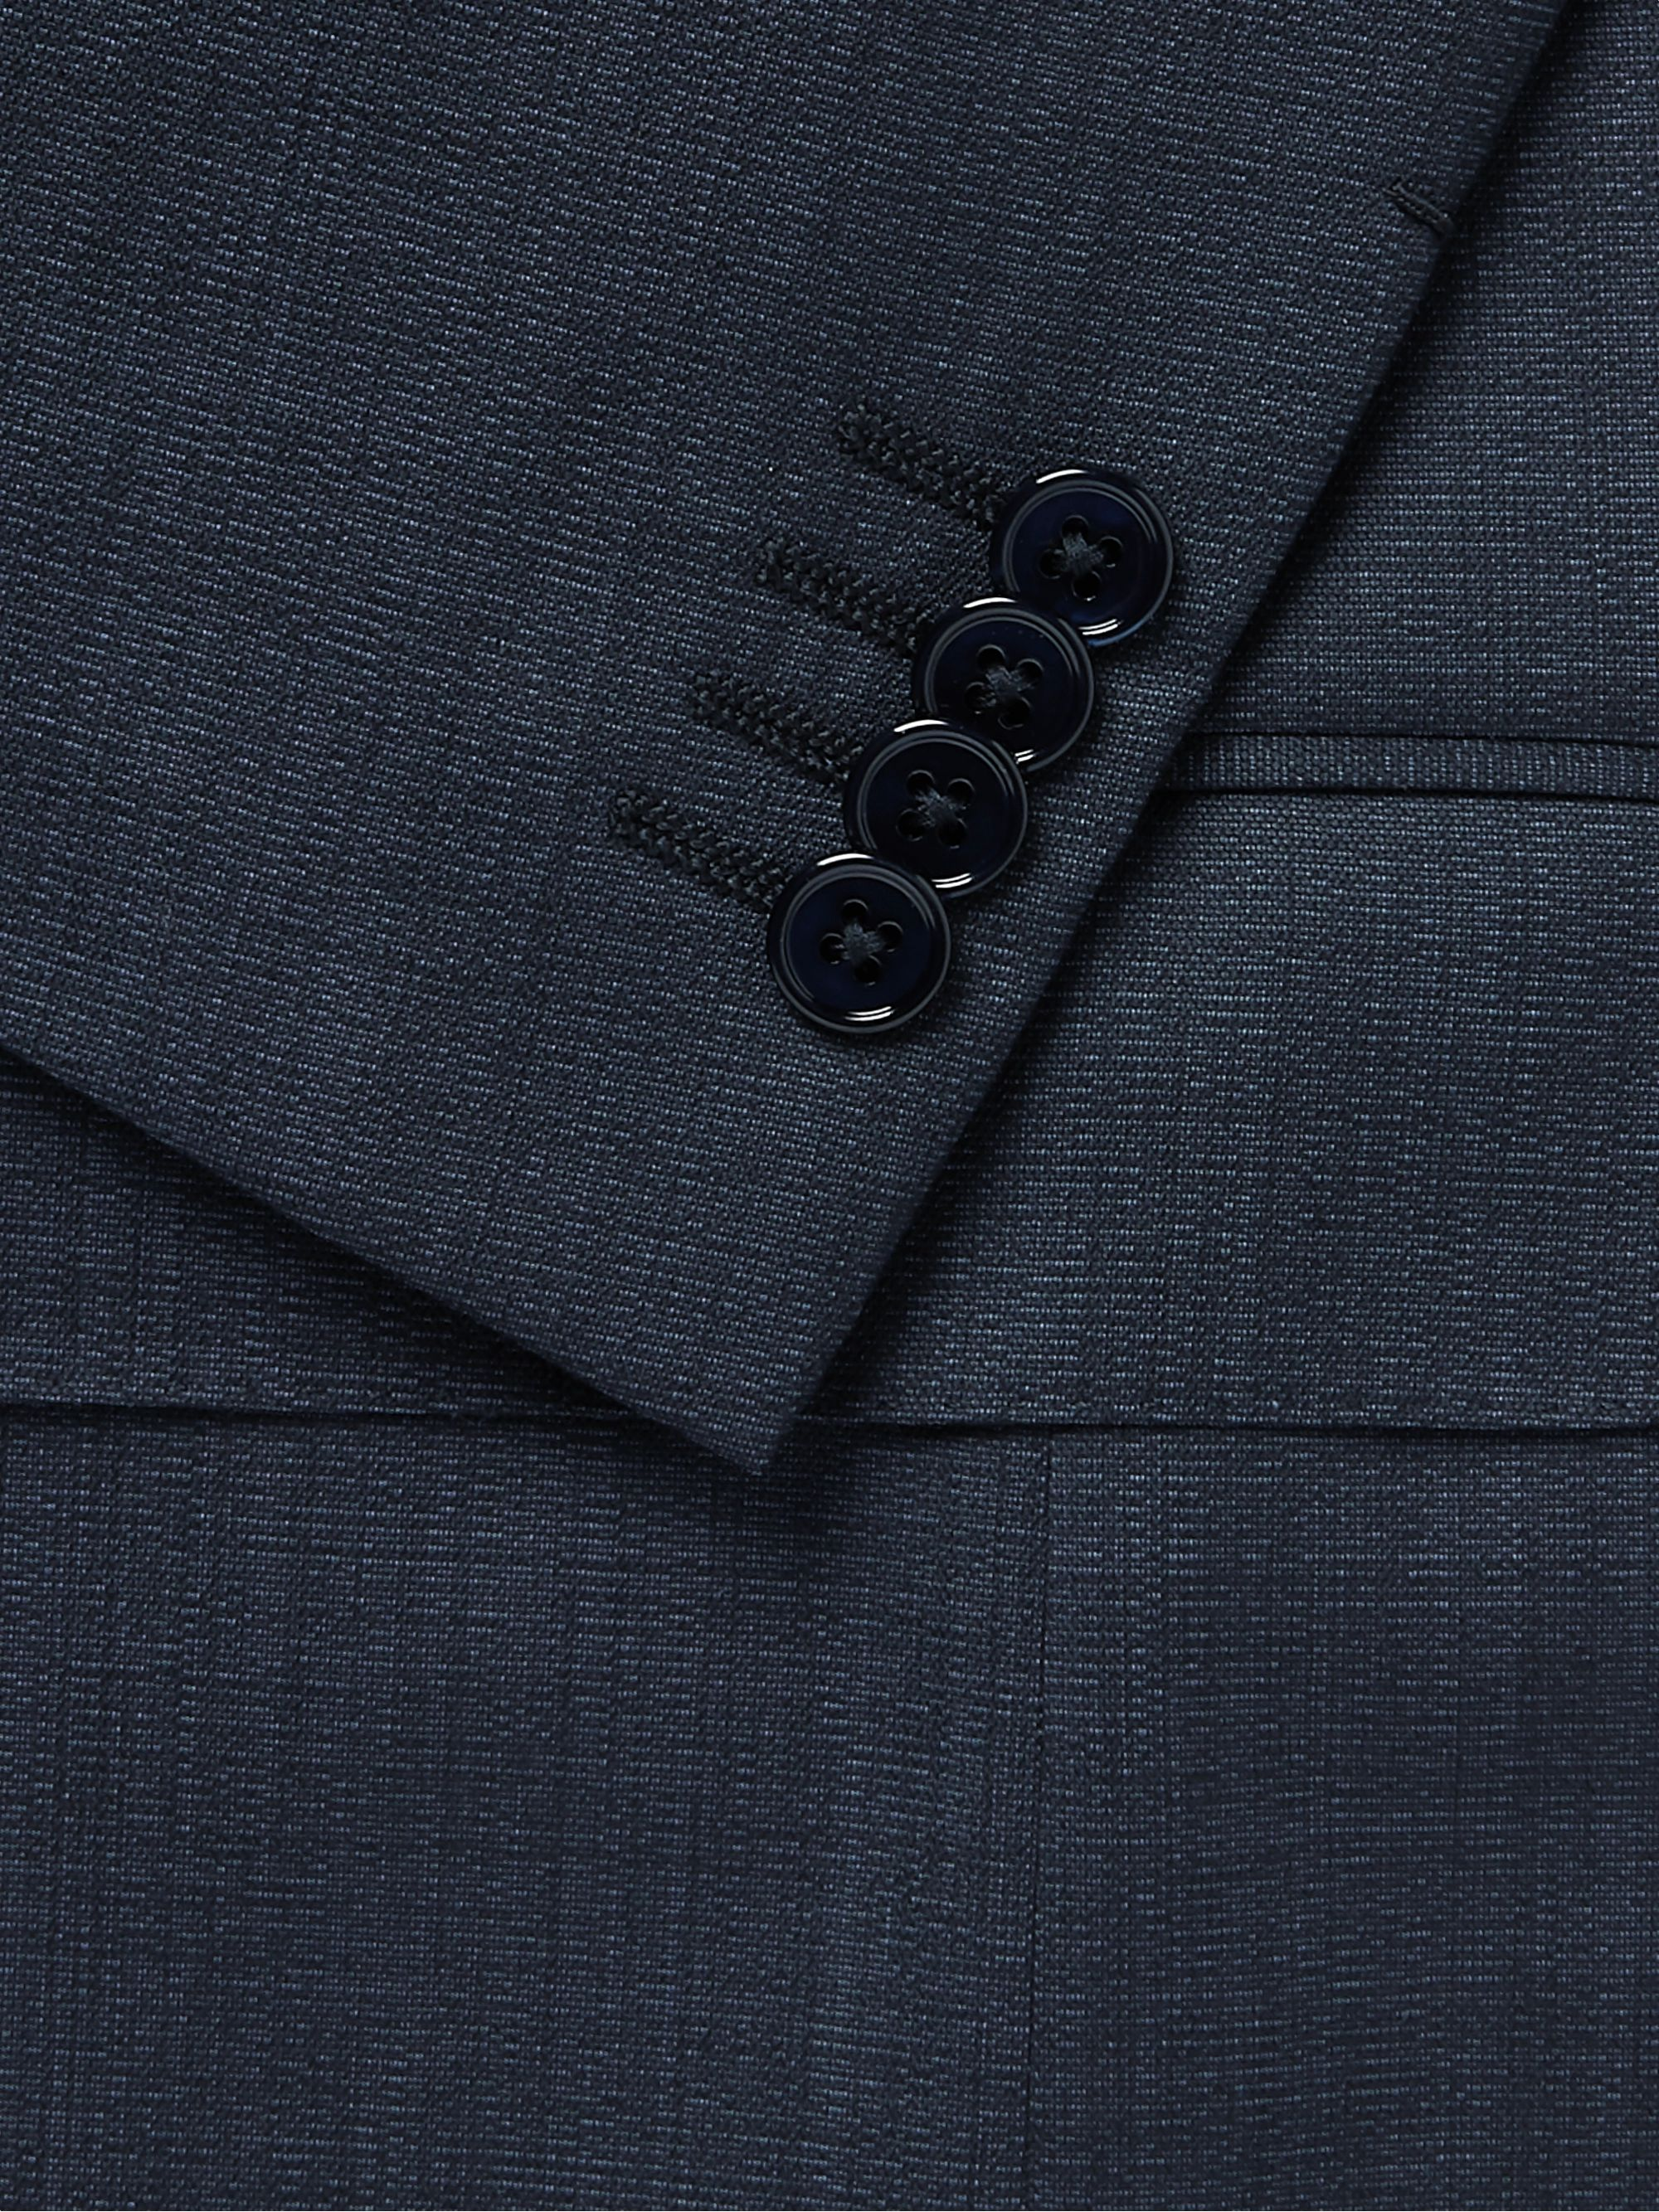 ERMENEGILDO ZEGNA Navy Slim-Fit Sharkskin Wool Suit